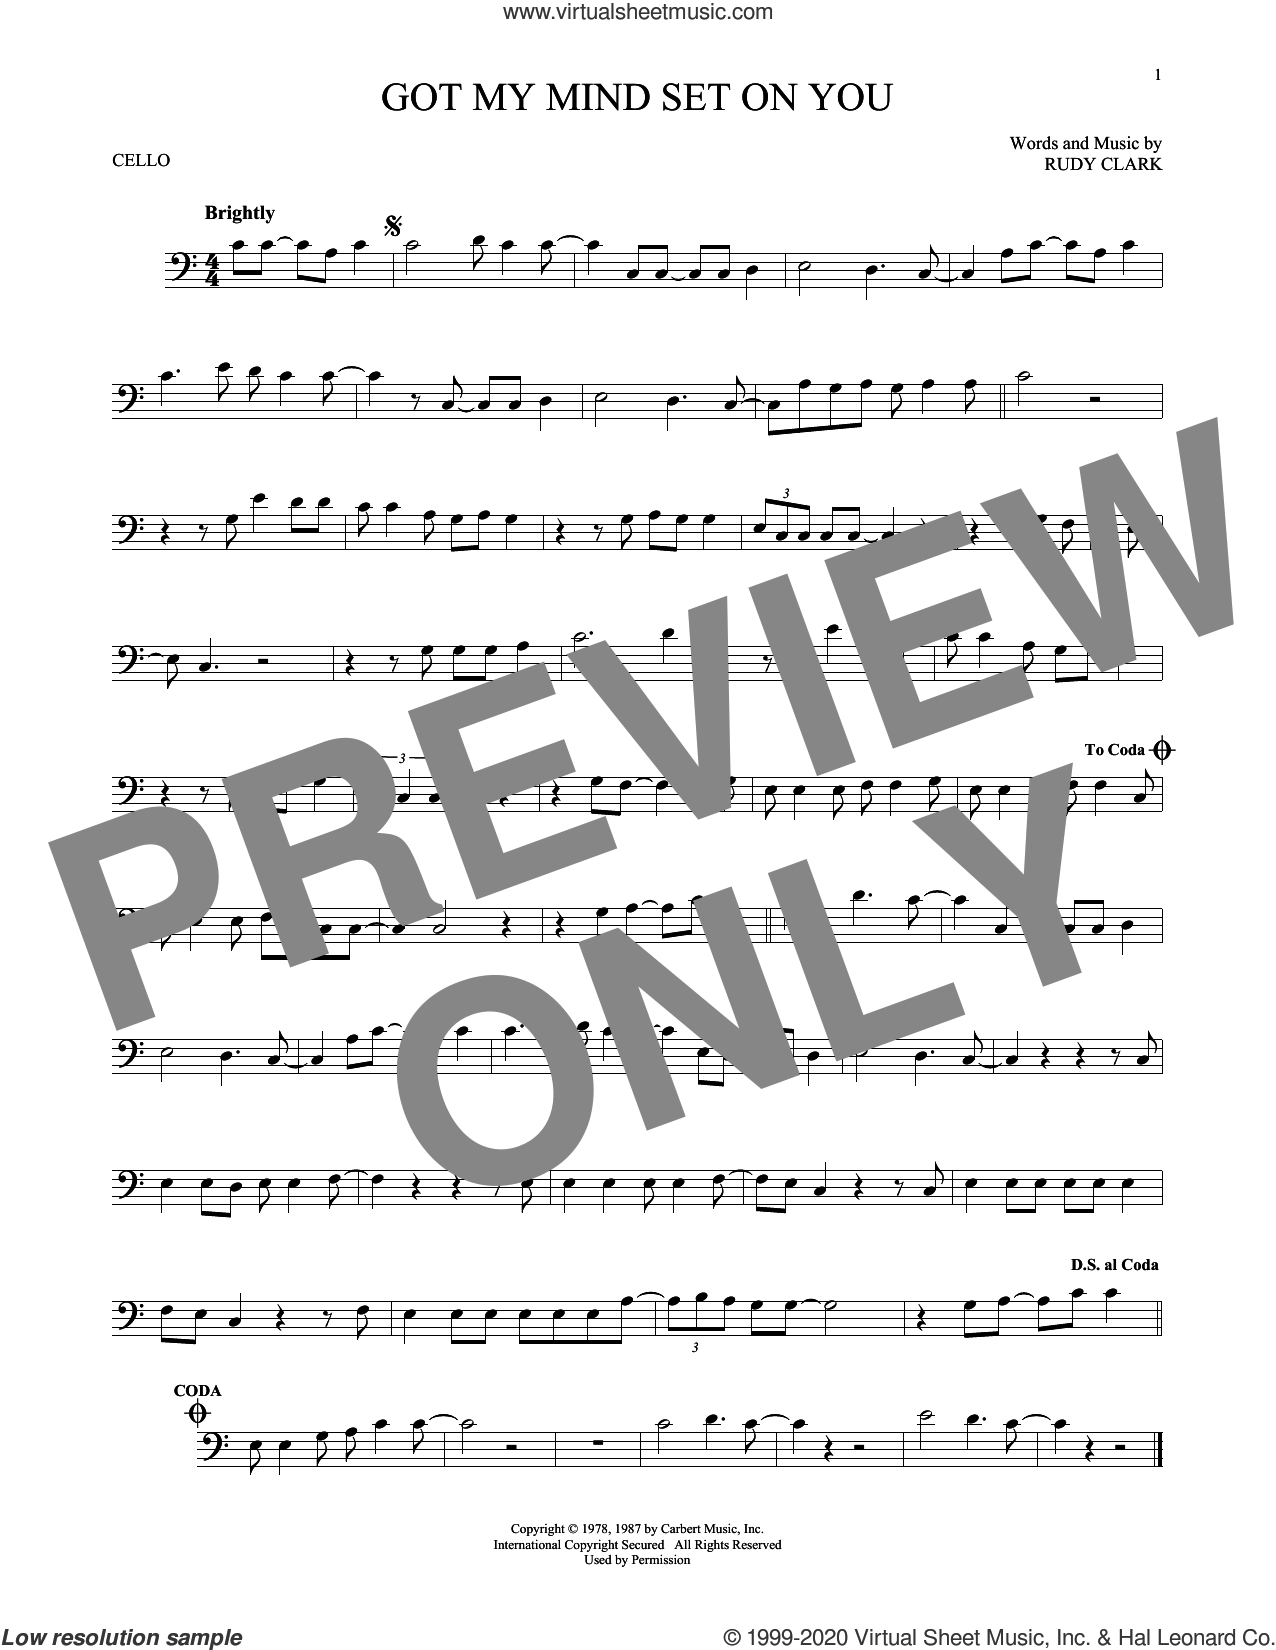 Got My Mind Set On You sheet music for cello solo by George Harrison and Rudy Clark, intermediate skill level